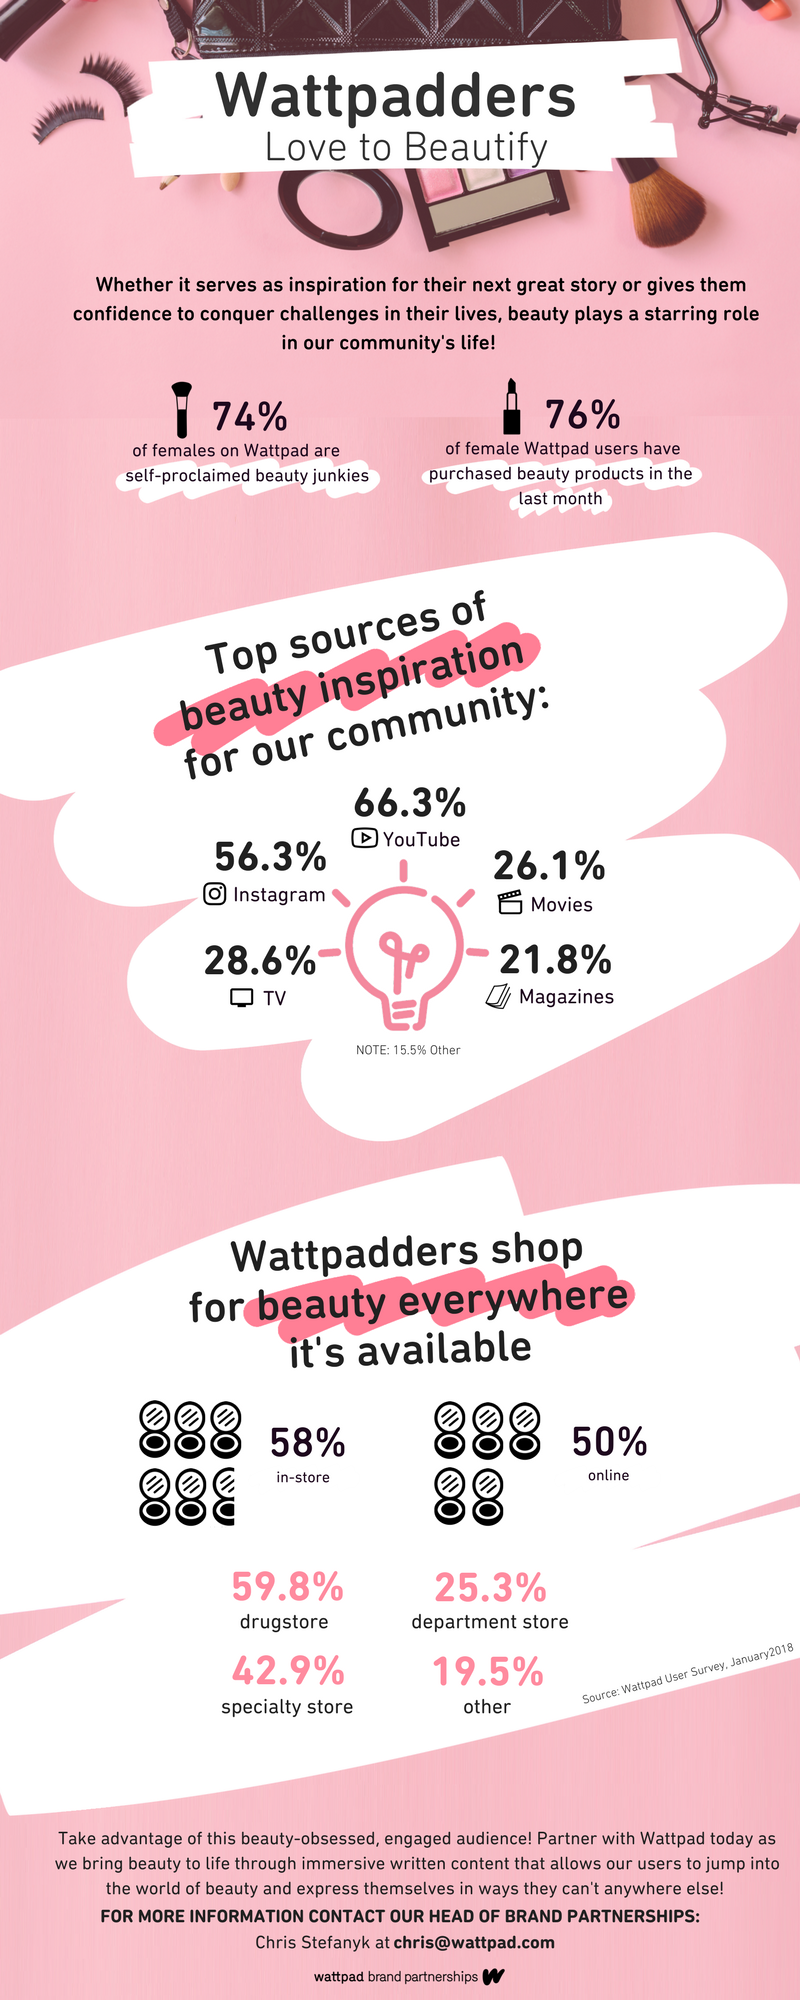 For more information visit  http://business.wattpad.com/brand-partnerships/  to learn more.